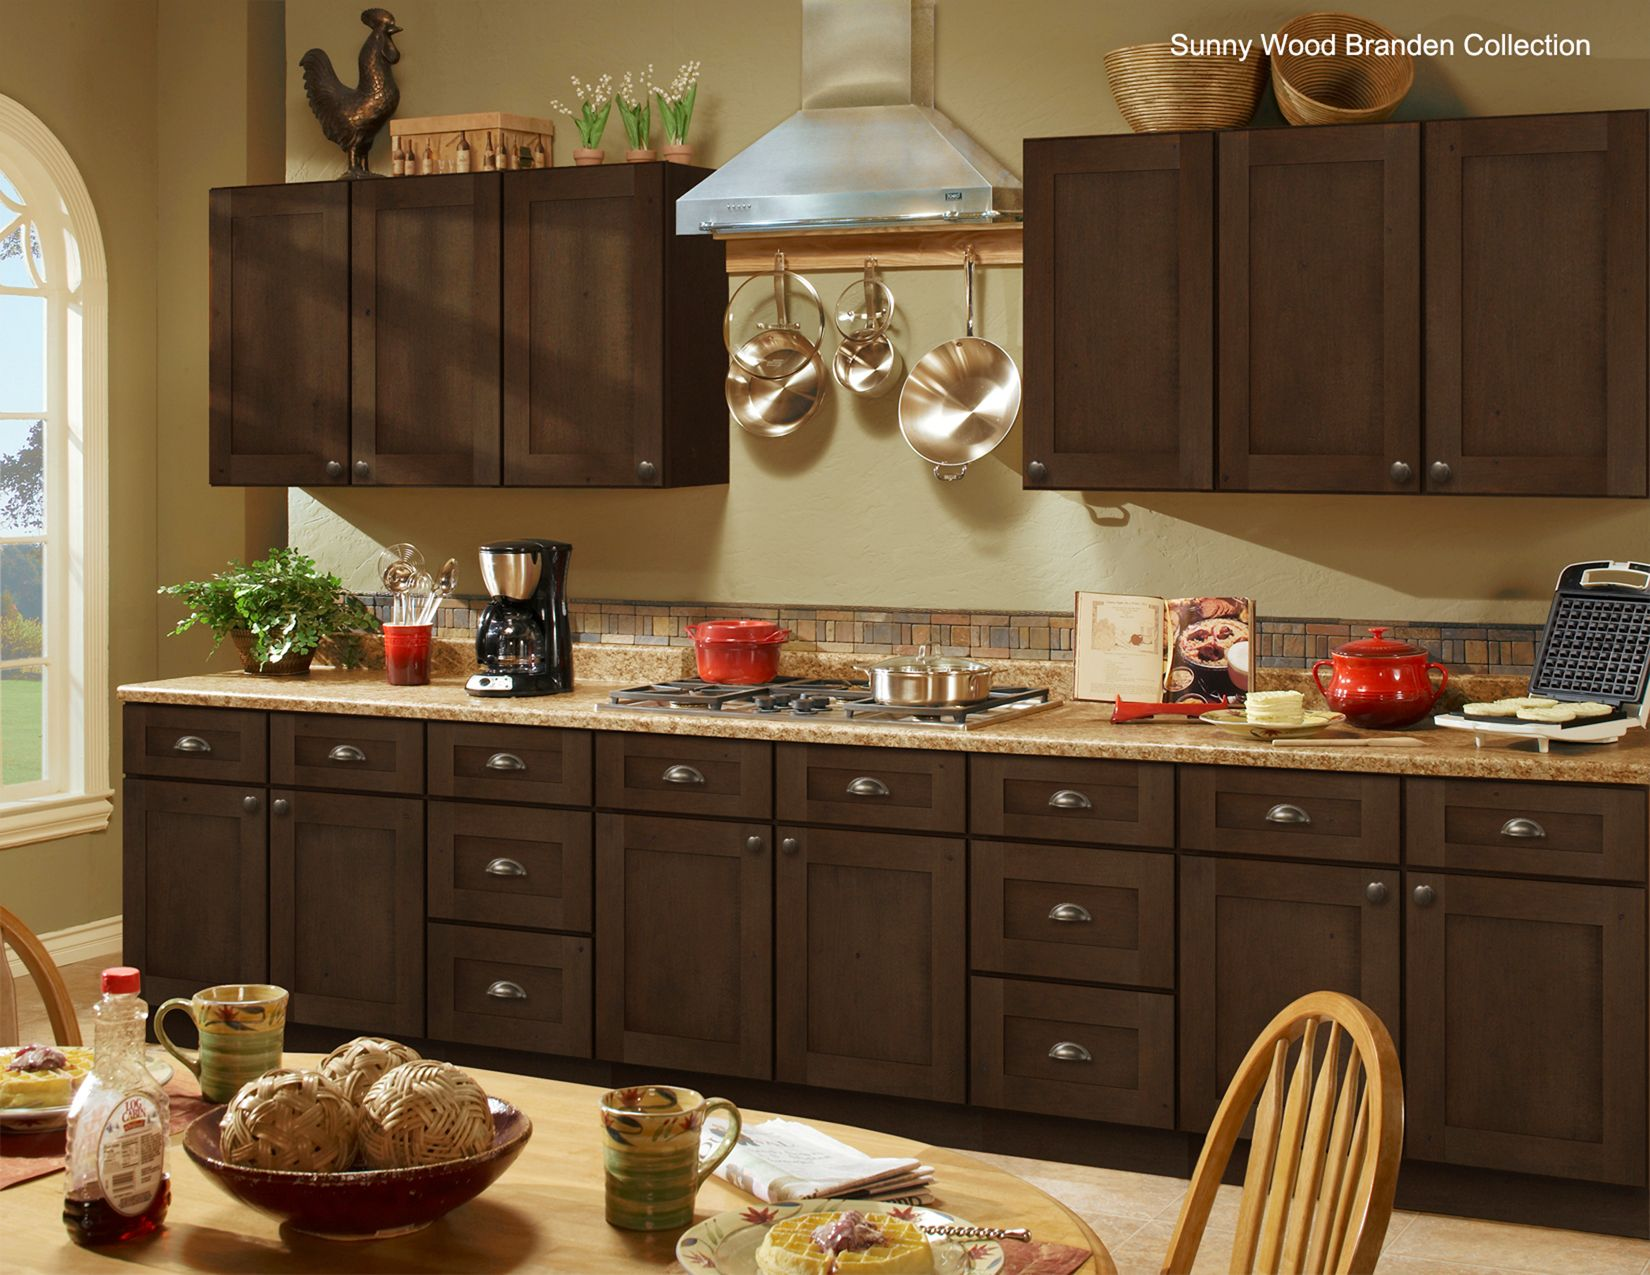 The Branden Kitchen Collection From Sunny Wood Find Out More At Www Sunnywood Biz Kitchen Collection Kitchen And Bath Showroom Kitchen Cabinets